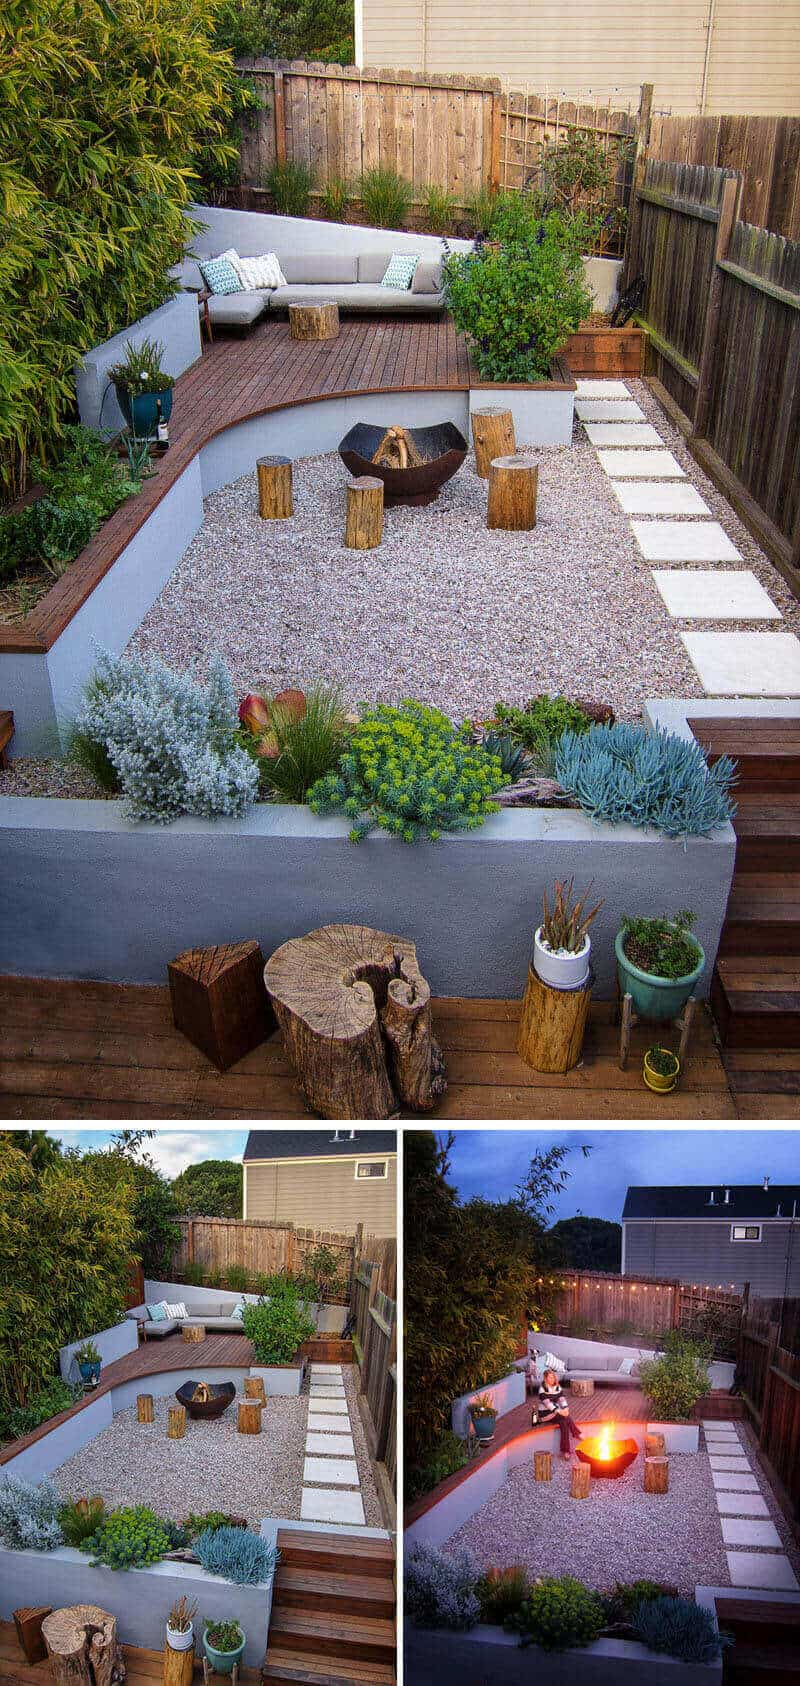 26 Deck Patio Designs for Small Yards on Small Yard Deck id=98791